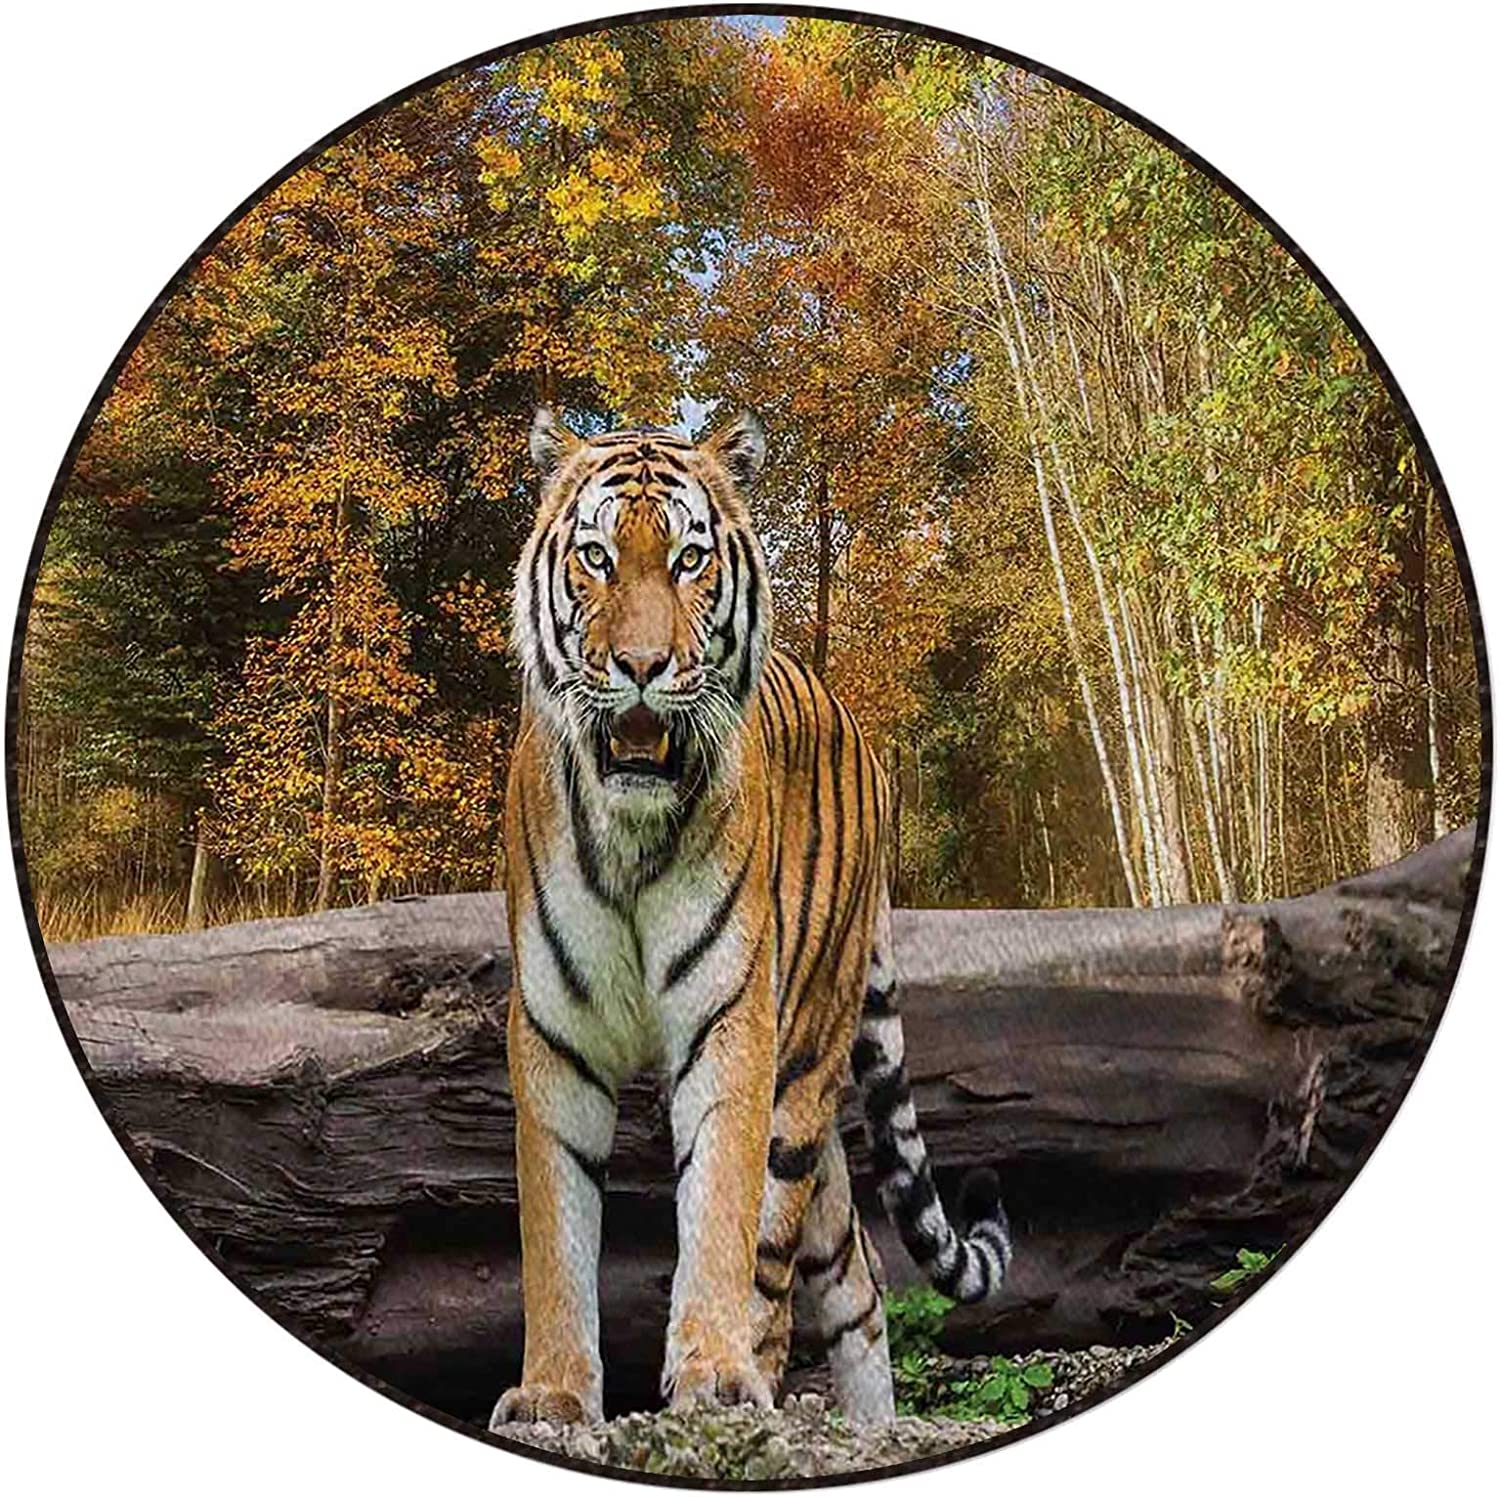 Tiger in Forest Office Swivel Chair Protector for Mat Floor Overseas parallel Sales of SALE items from new works import regular item Roll